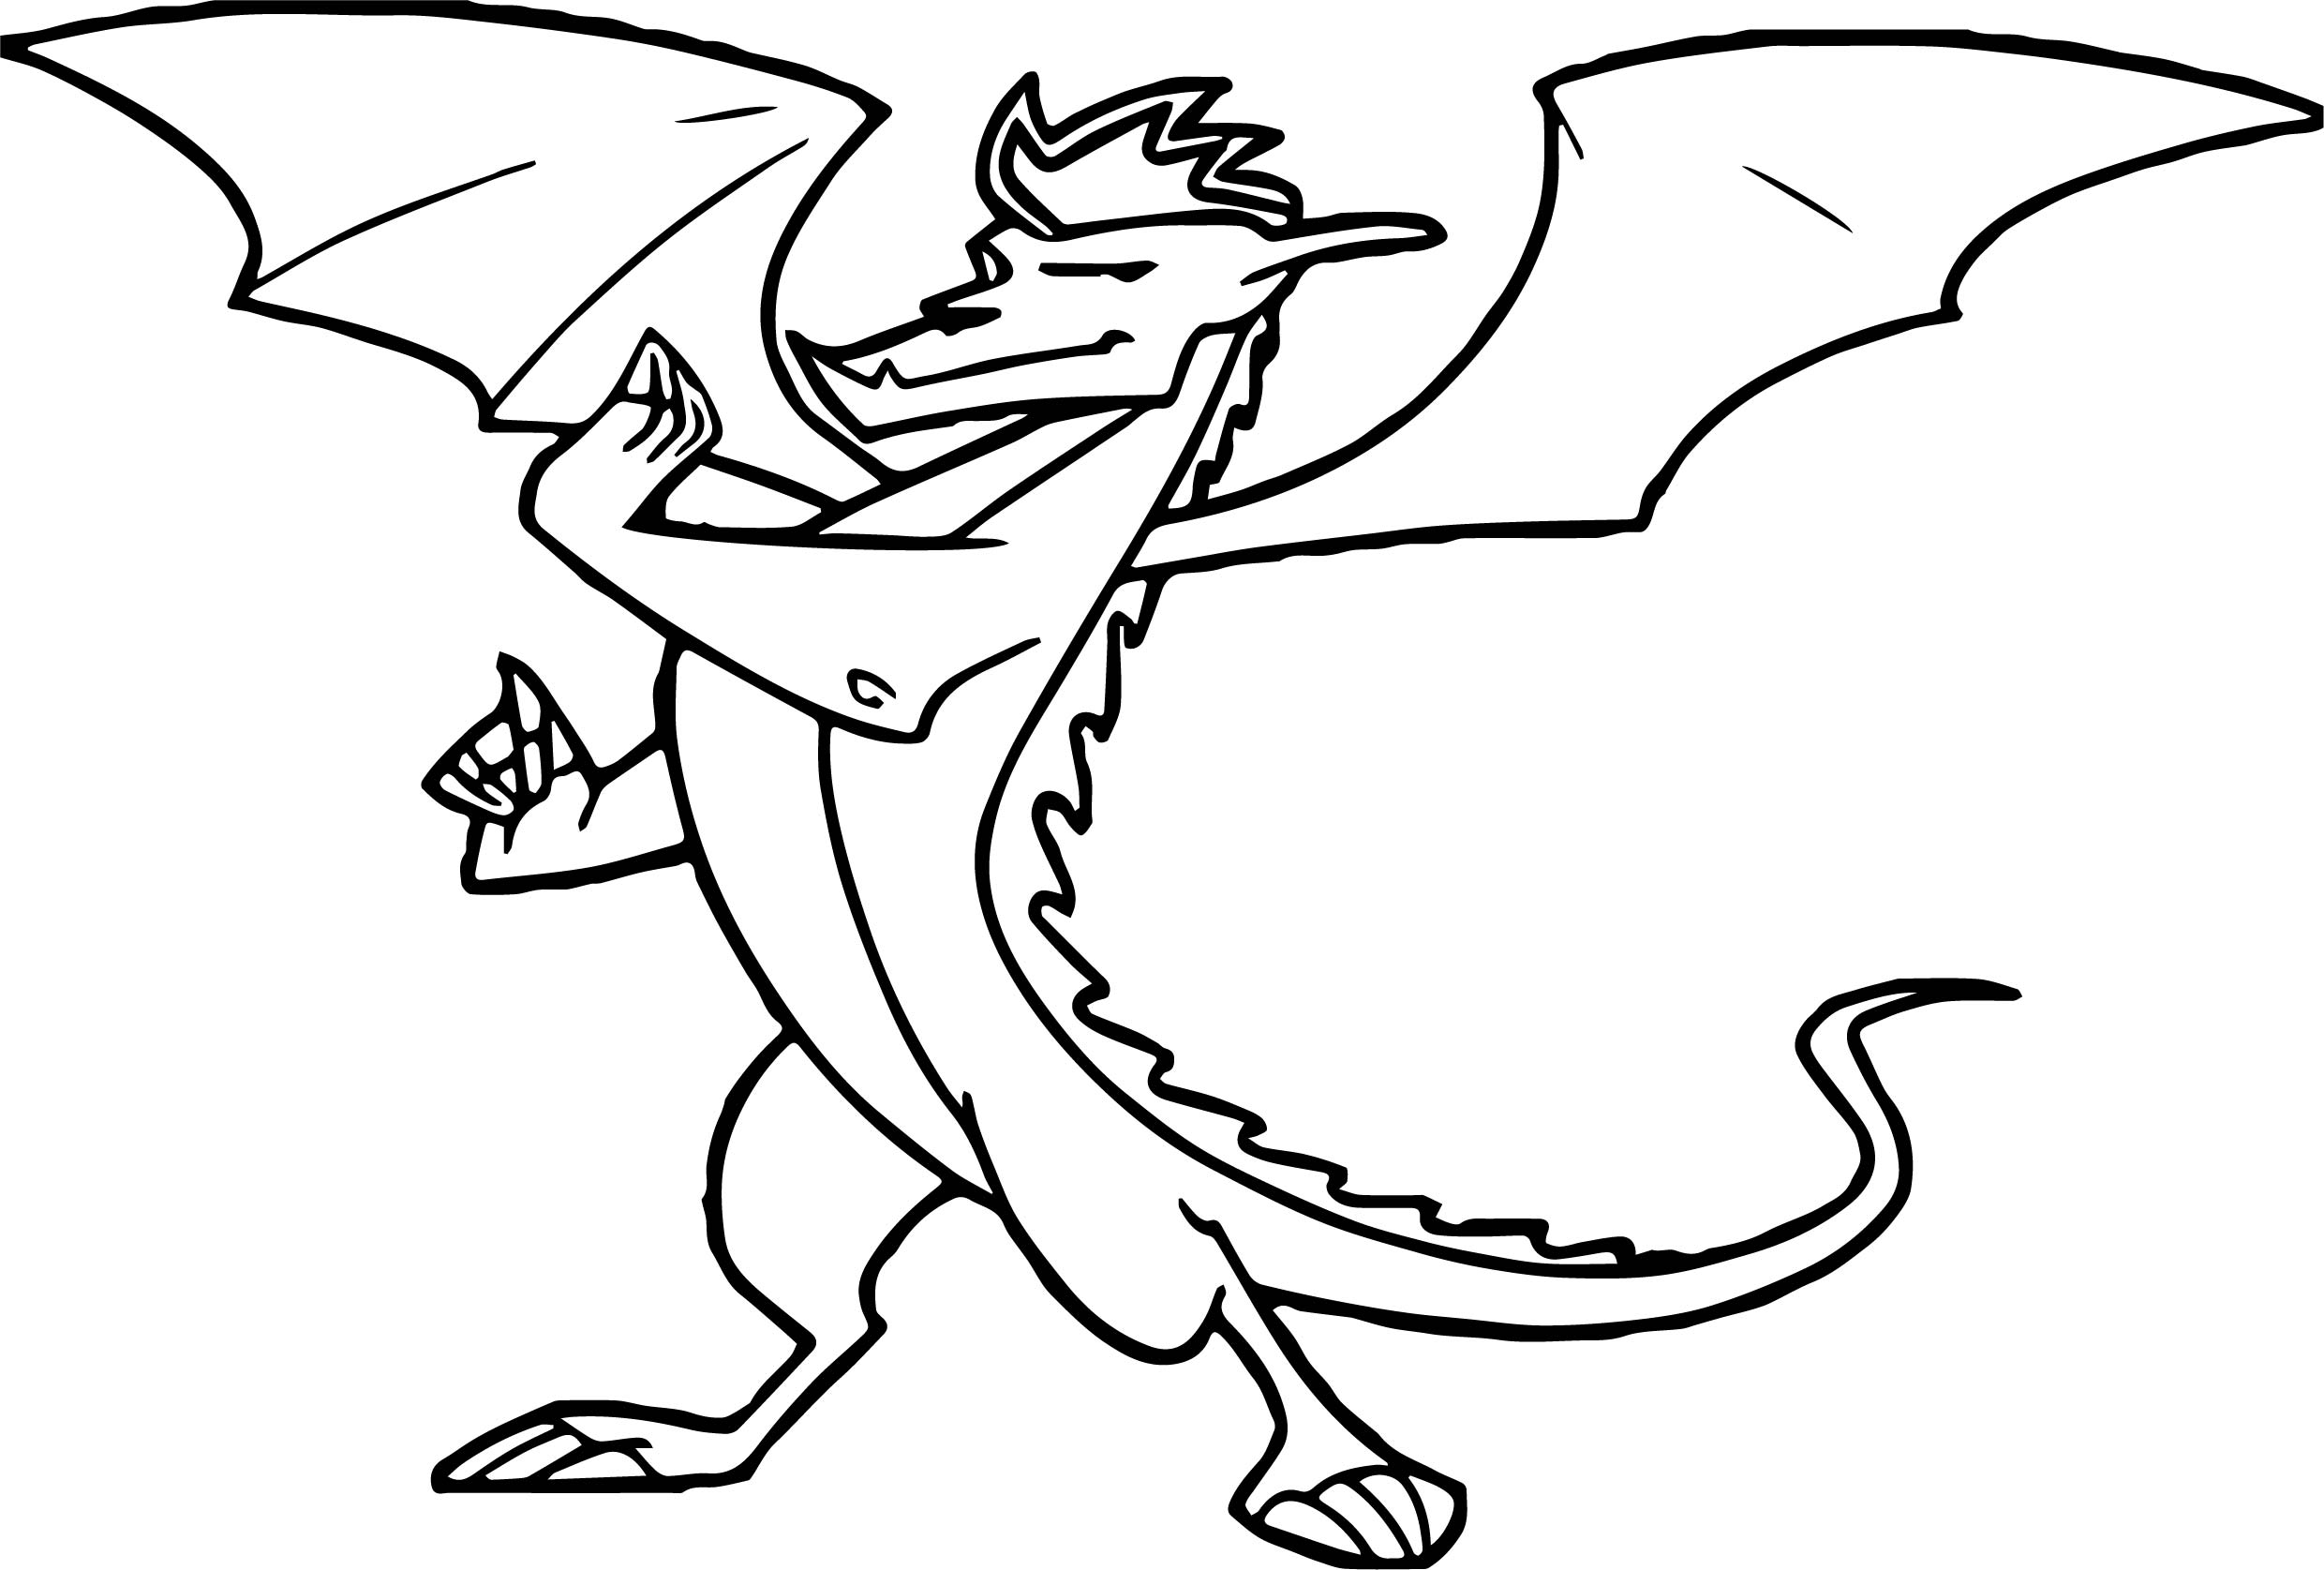 2480x1675 American Dragon Jake Long Coloring Pages For Kids Printable Free